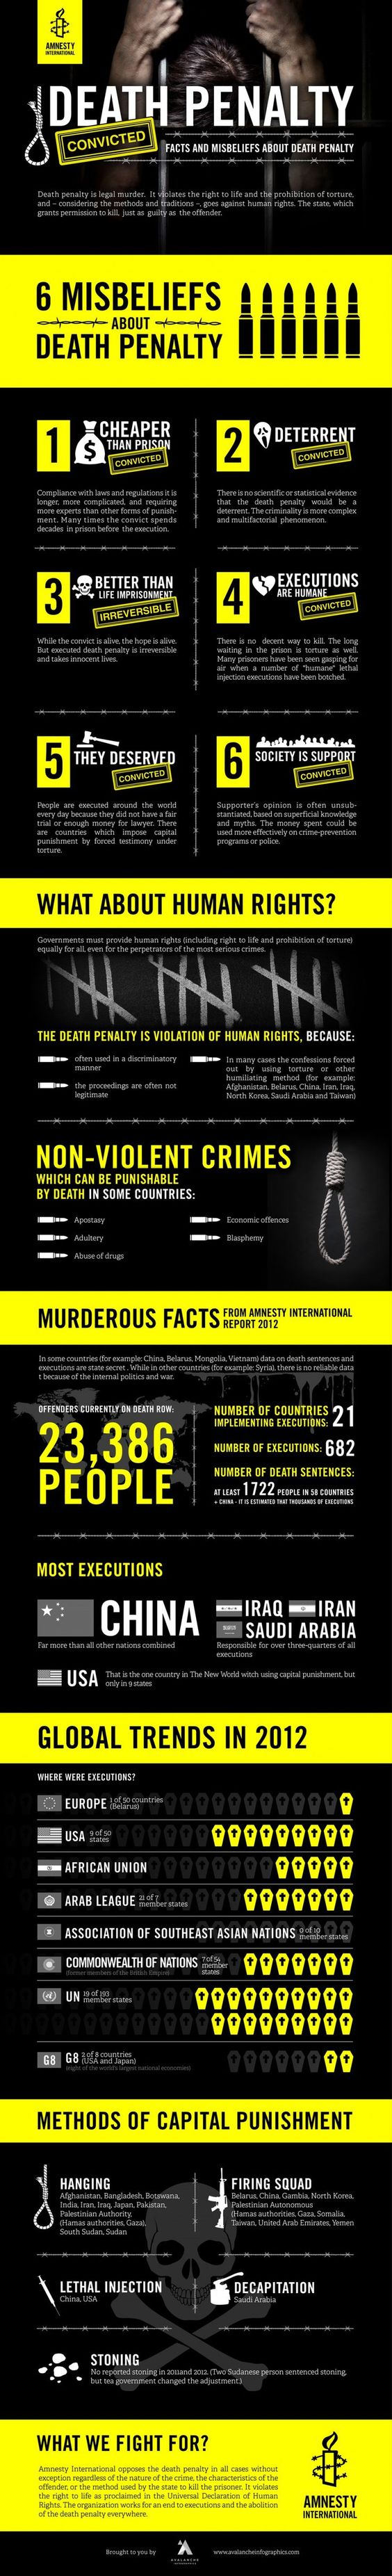 Death Penalty Infographic